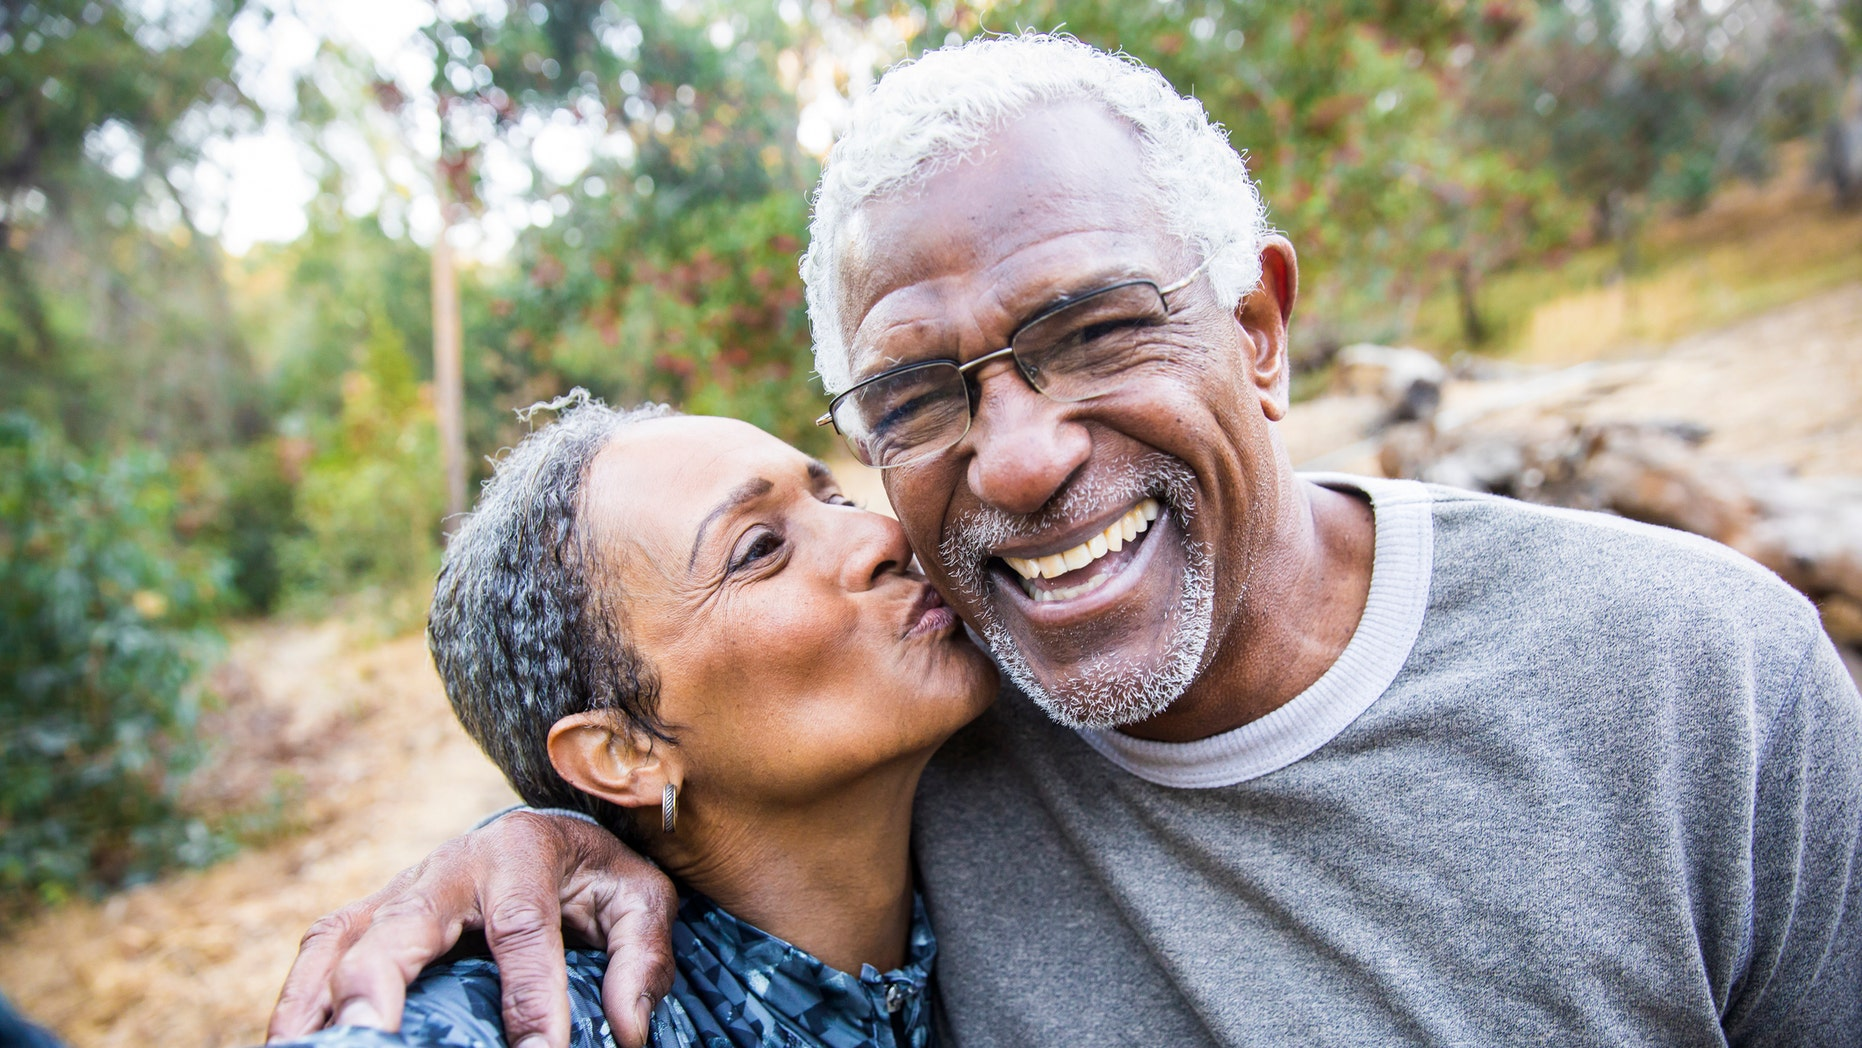 The study suggests that people with the GC genotype report more satisfying, happier marriages.